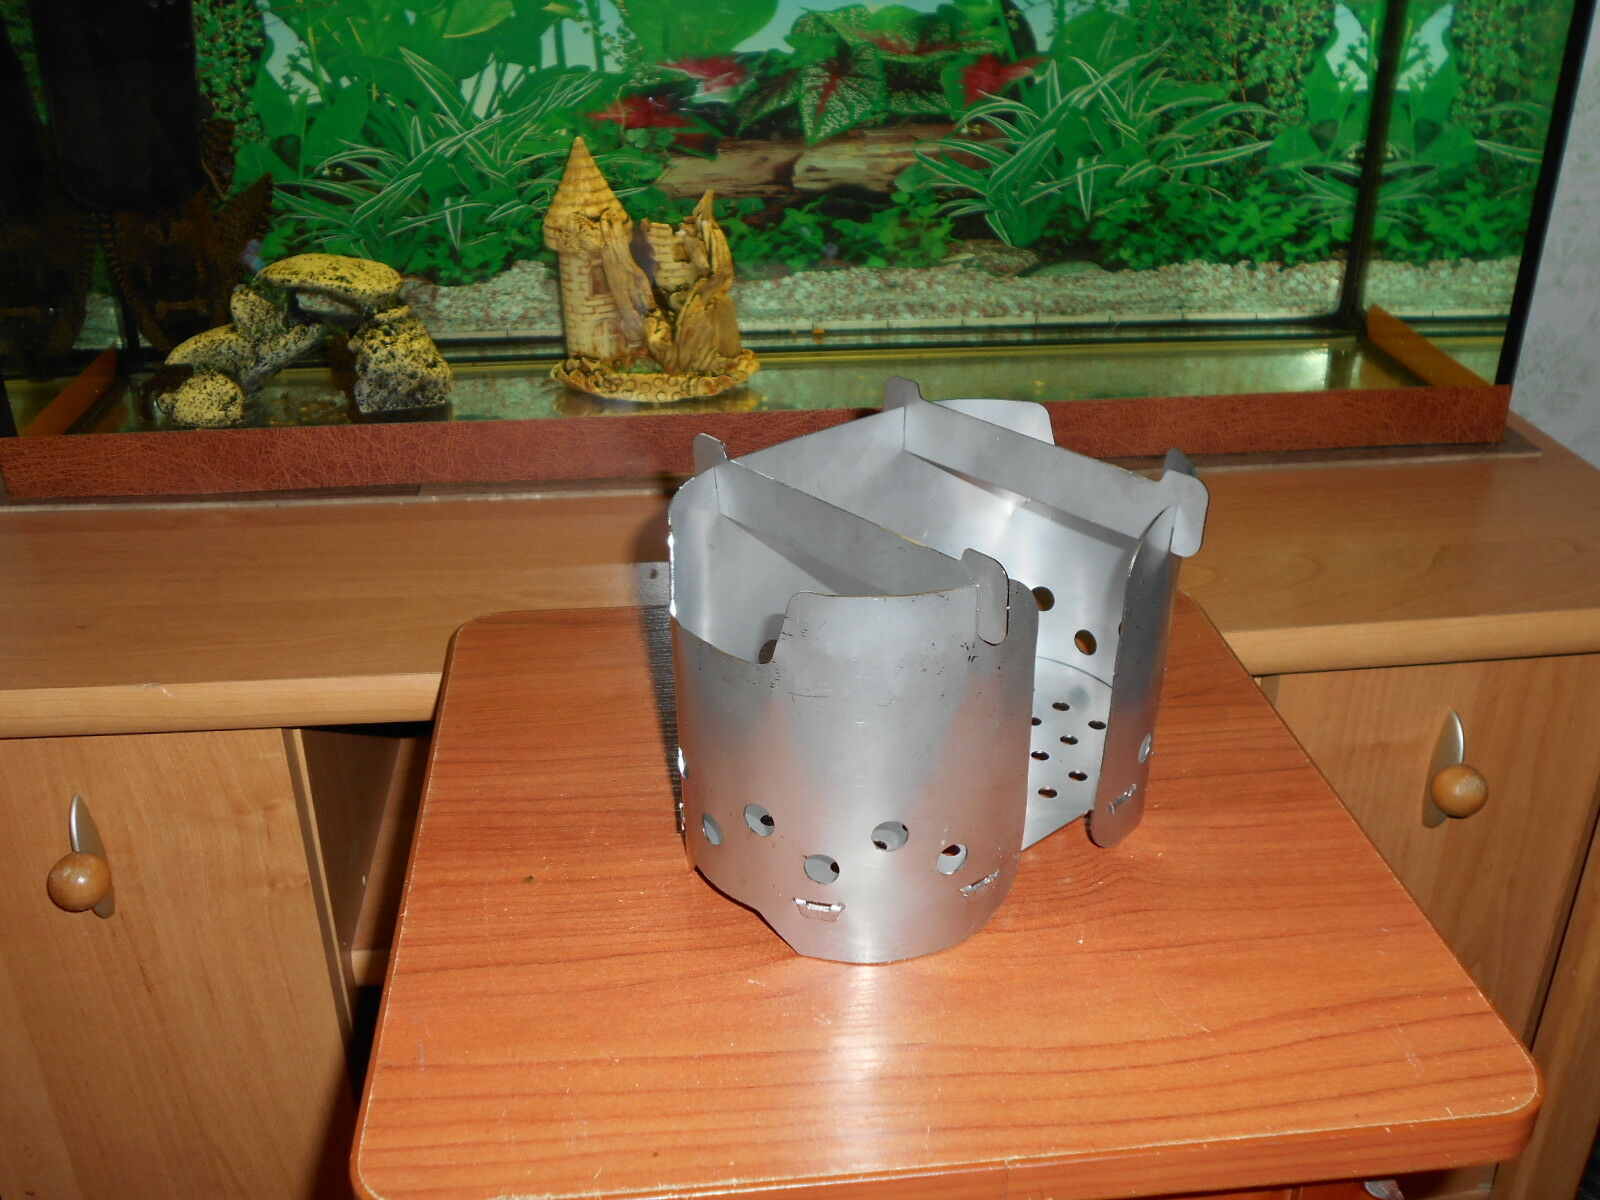 Portable Wood Stove for army pot - Stainless steel